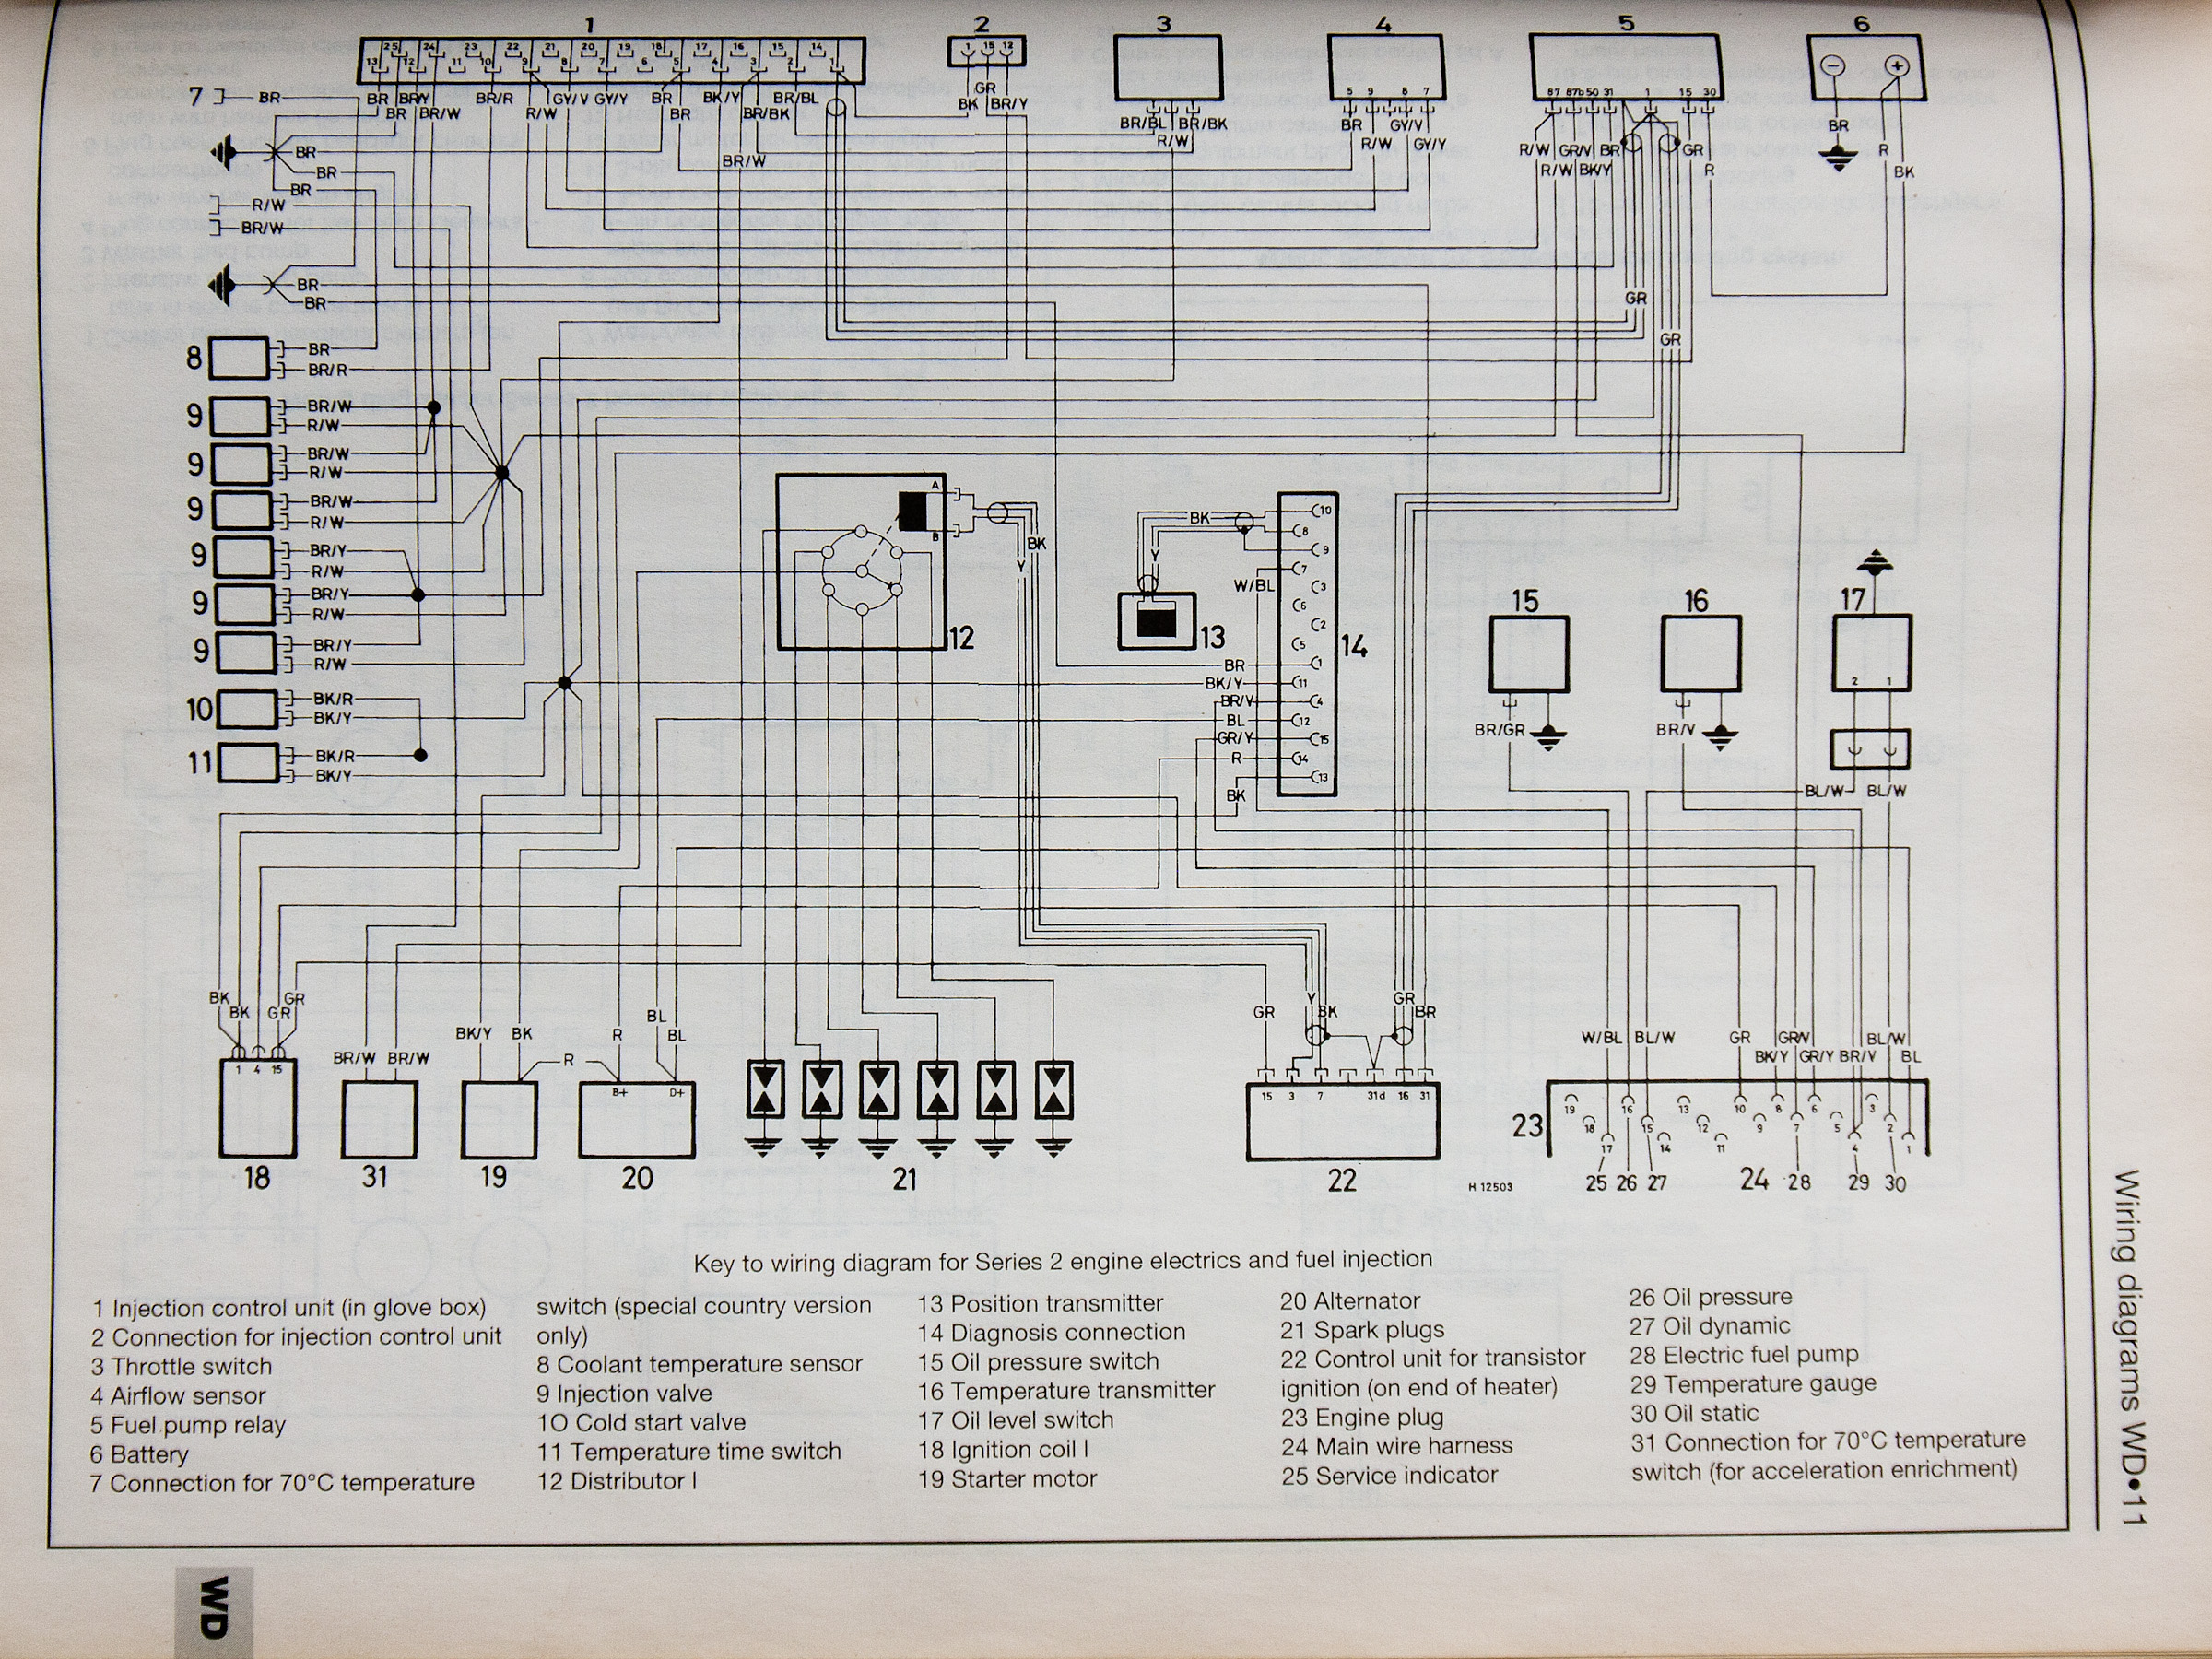 e30_ljetronic_001 e30_ljetronic_001 jpg 1982 bmw e21 jetronic wiring diagram at n-0.co